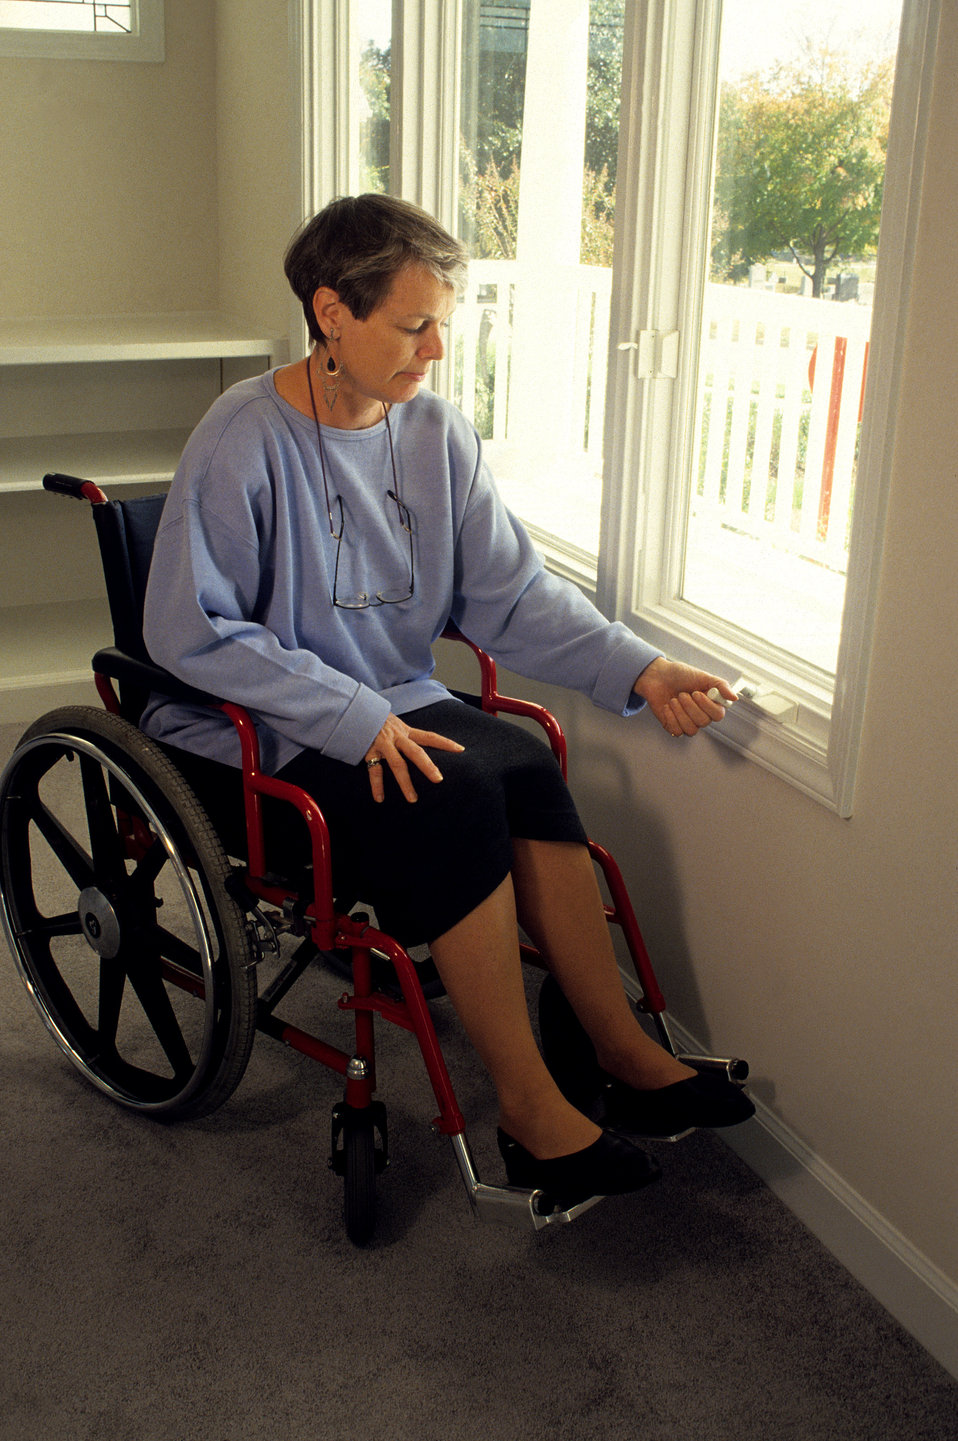 In this 1995 image, a woman seated in a wheelchair was operating a manual hand crank on a casement window.  Because the crank was located on